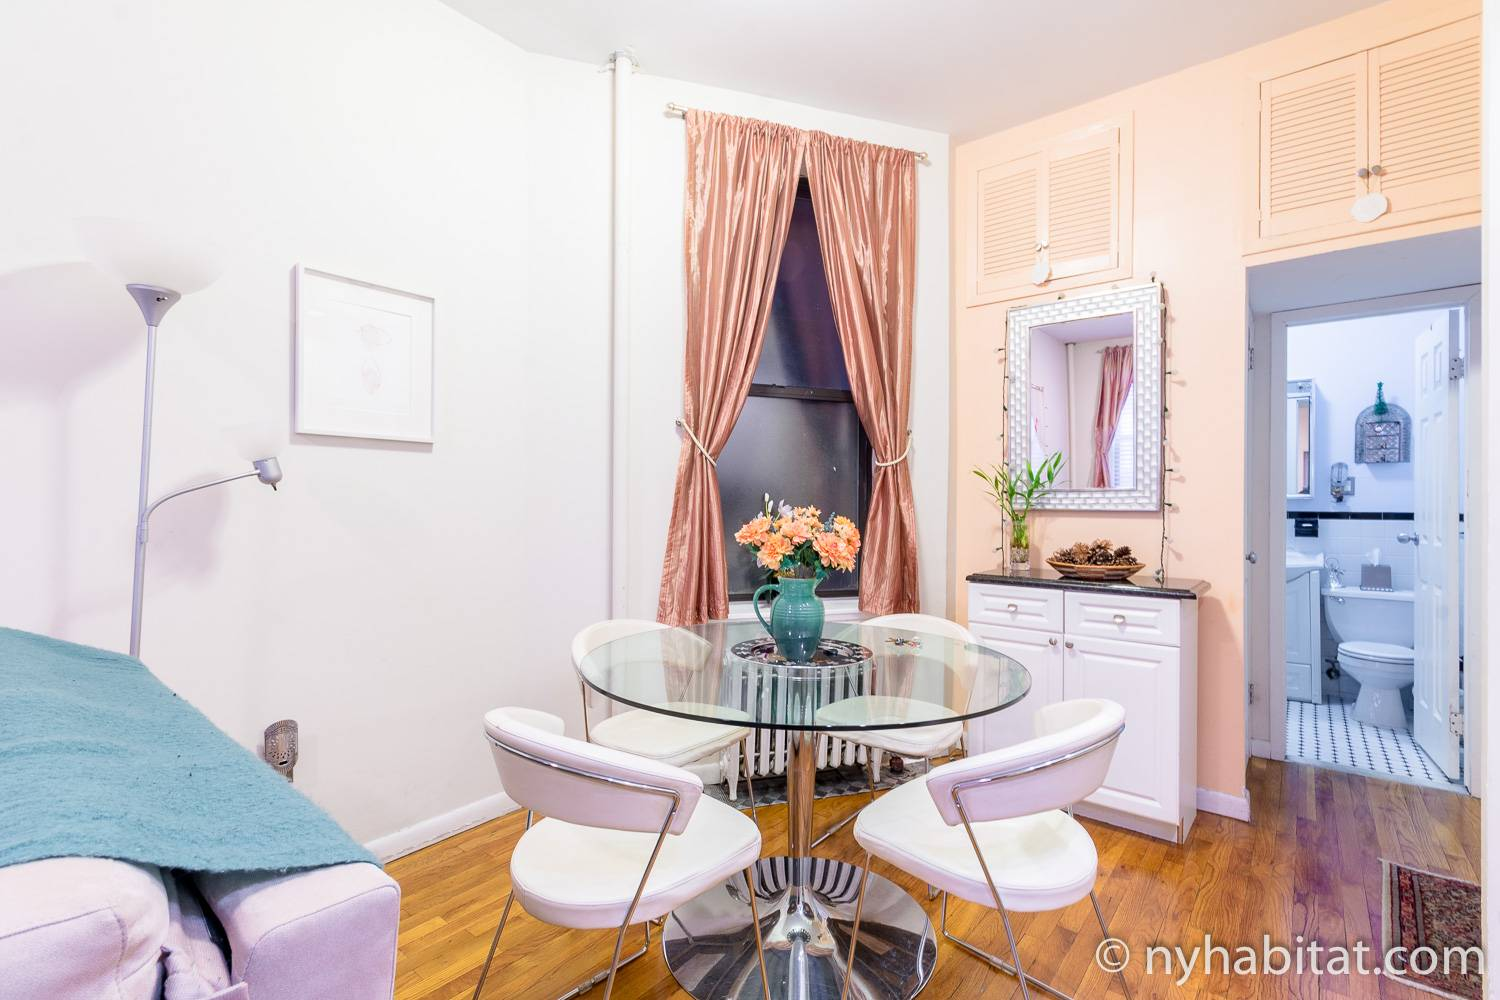 Image of living area in NY-15238 with table and chairs and flowers.